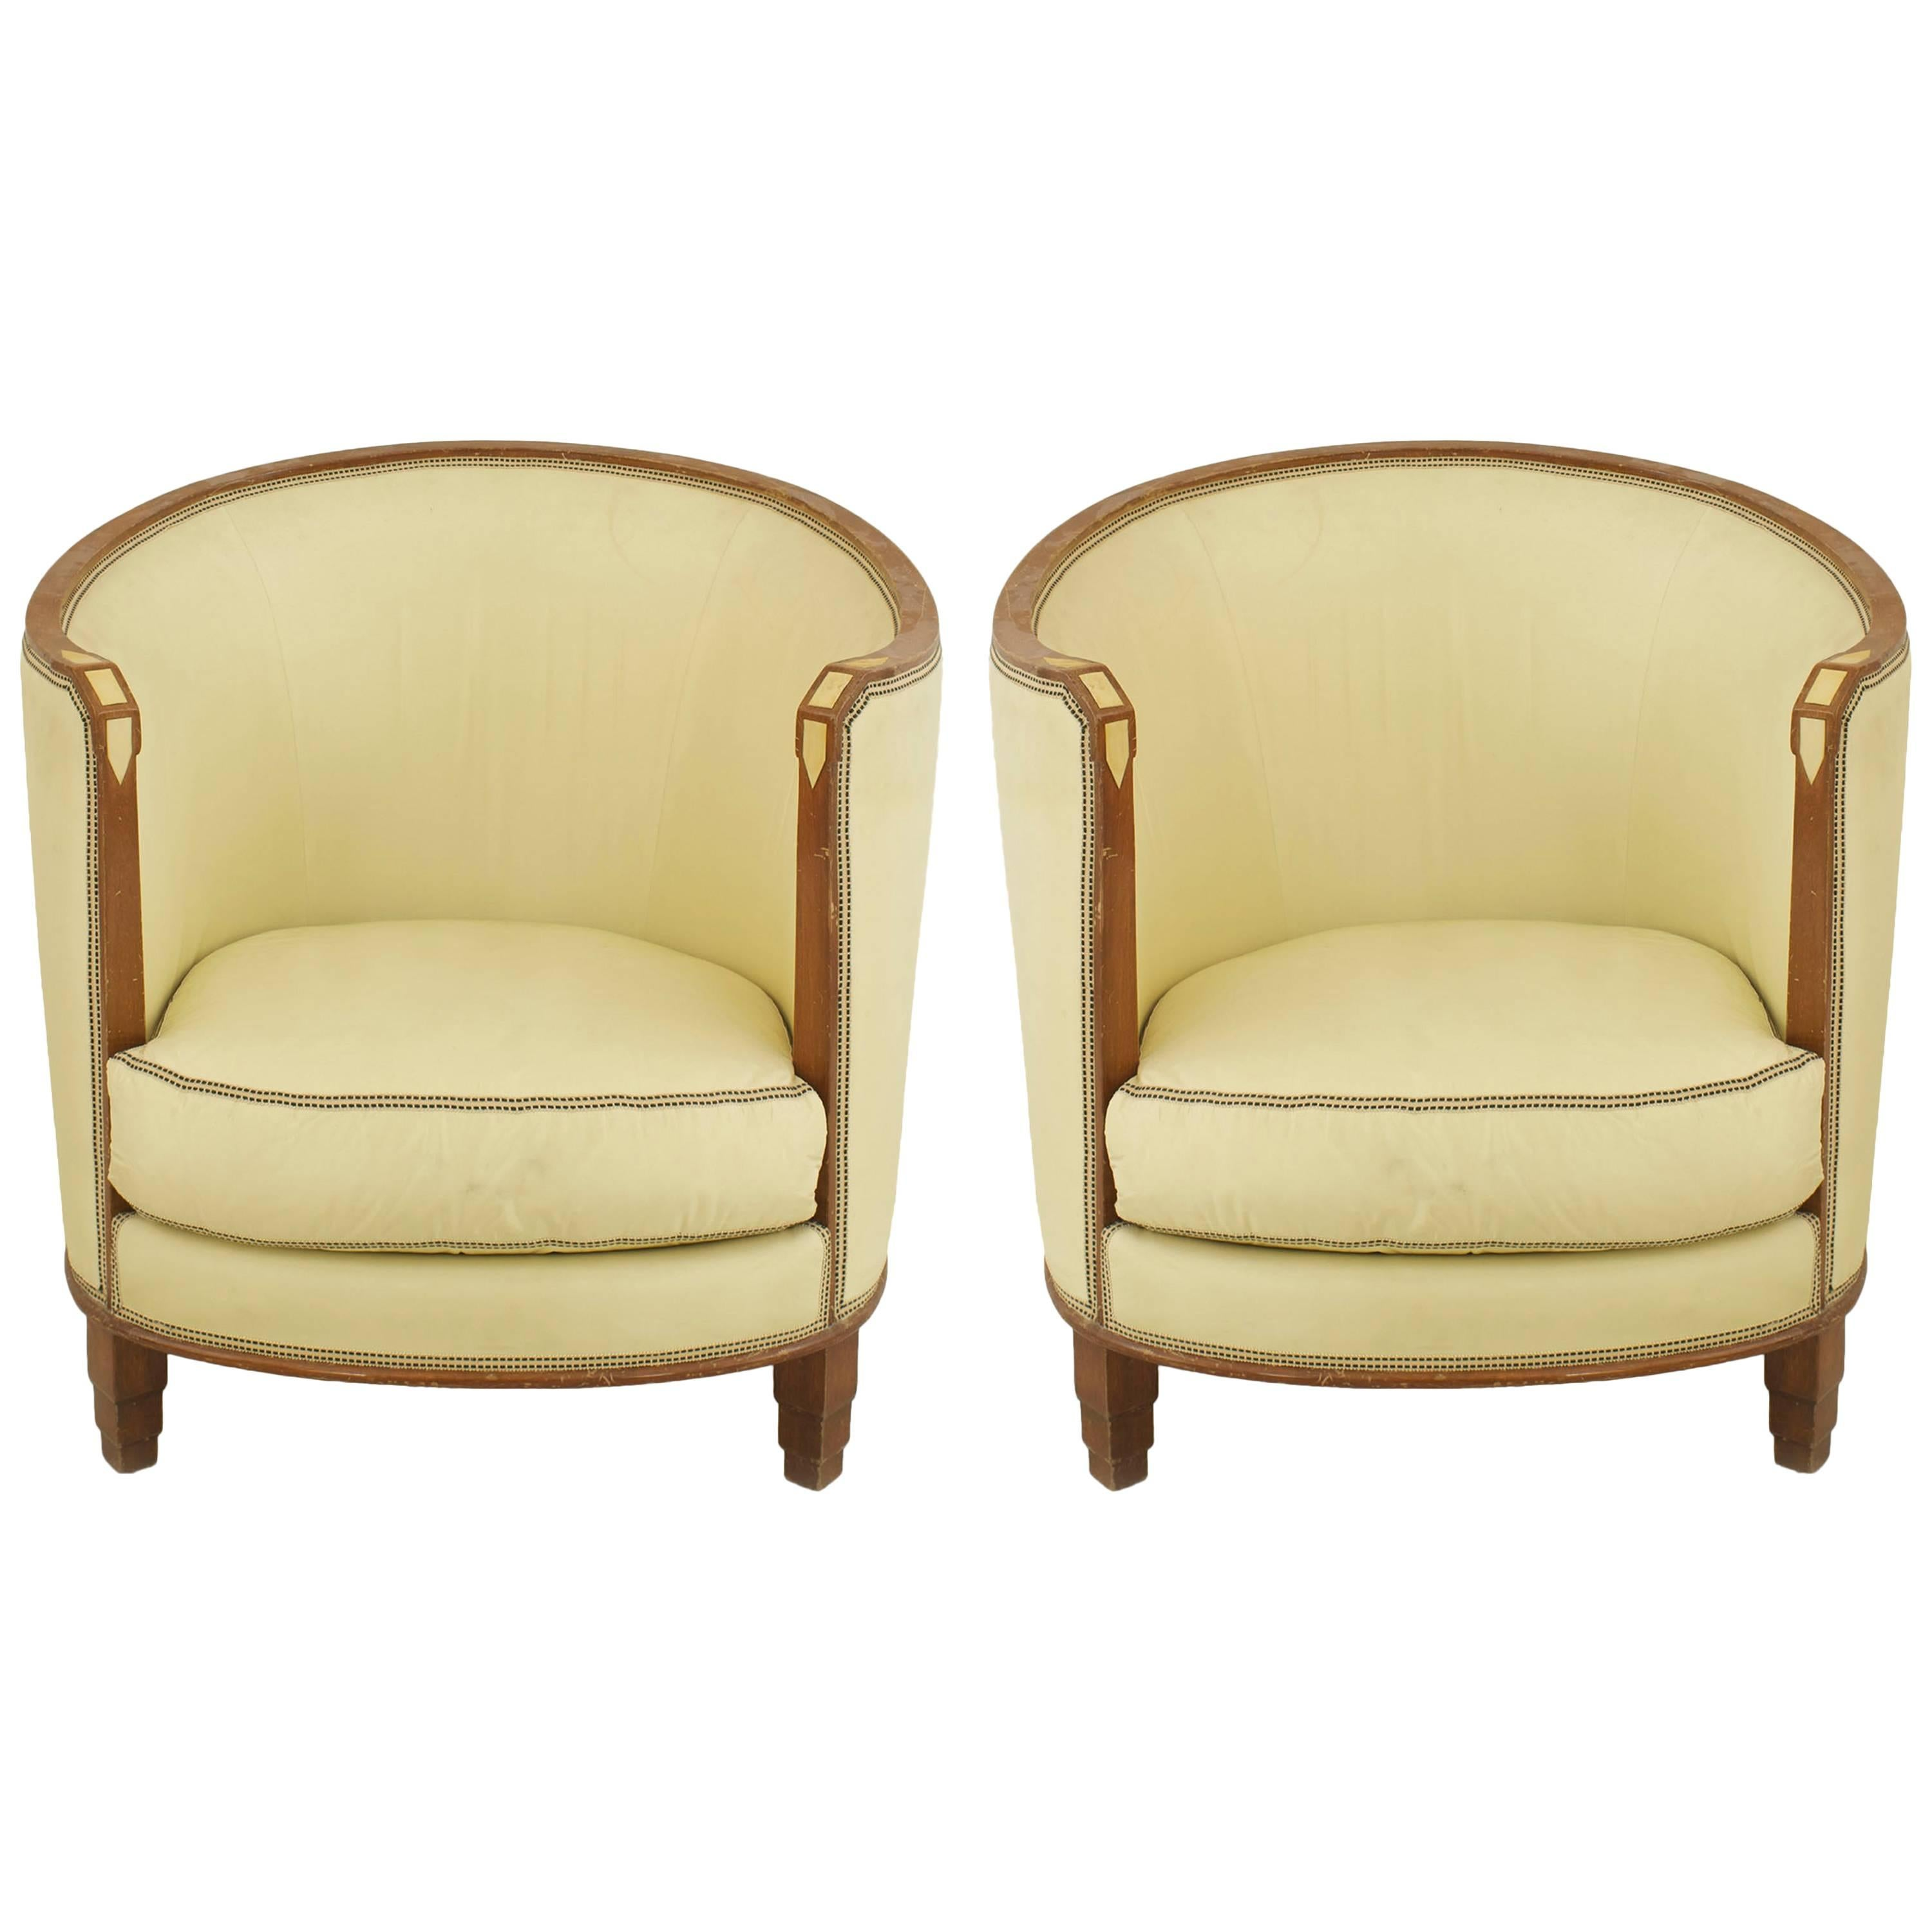 Pair of French Art Deco Walnut Armchairs